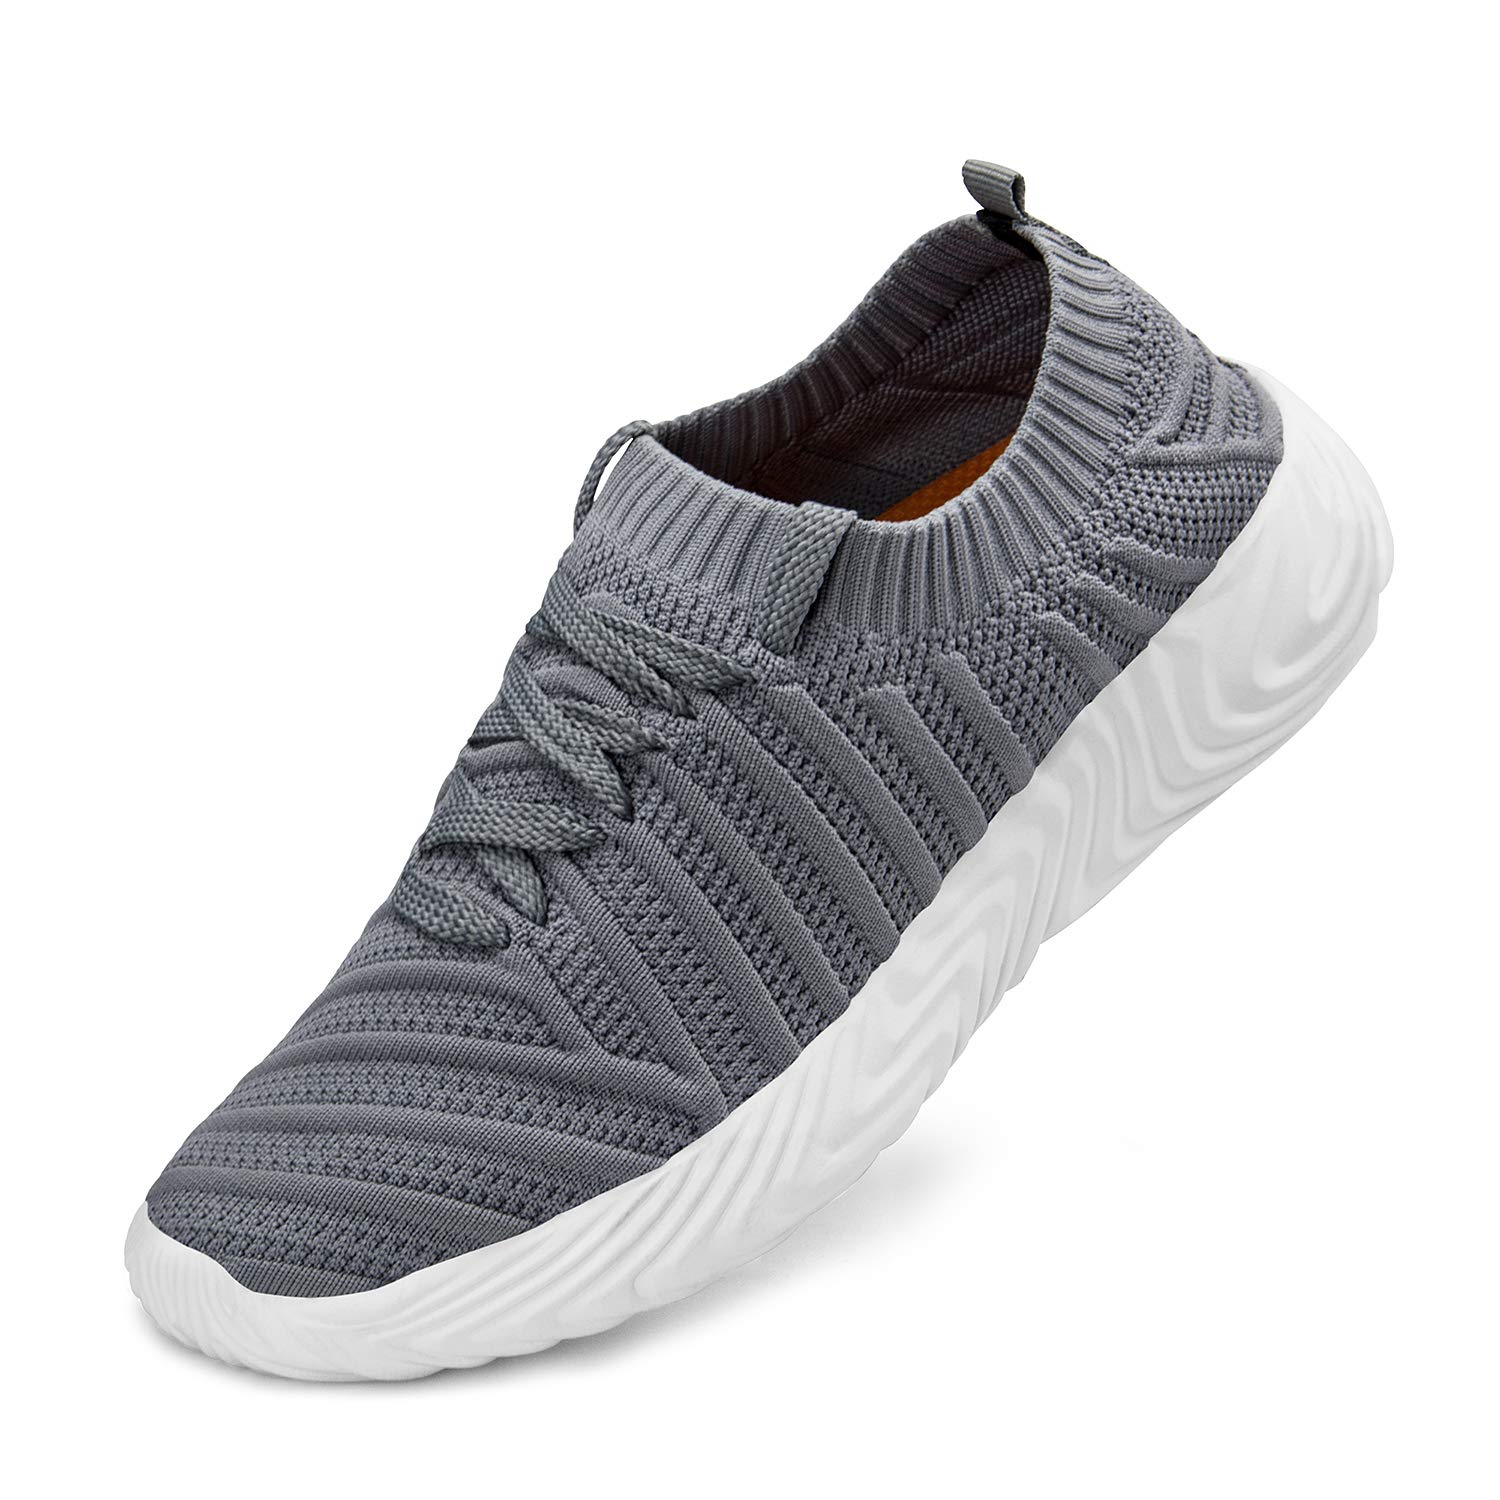 Grey ZOCAVIA Womens Walking shoes Knit Breathable Lightweight Slip On Tennis Running Gym Sneakers